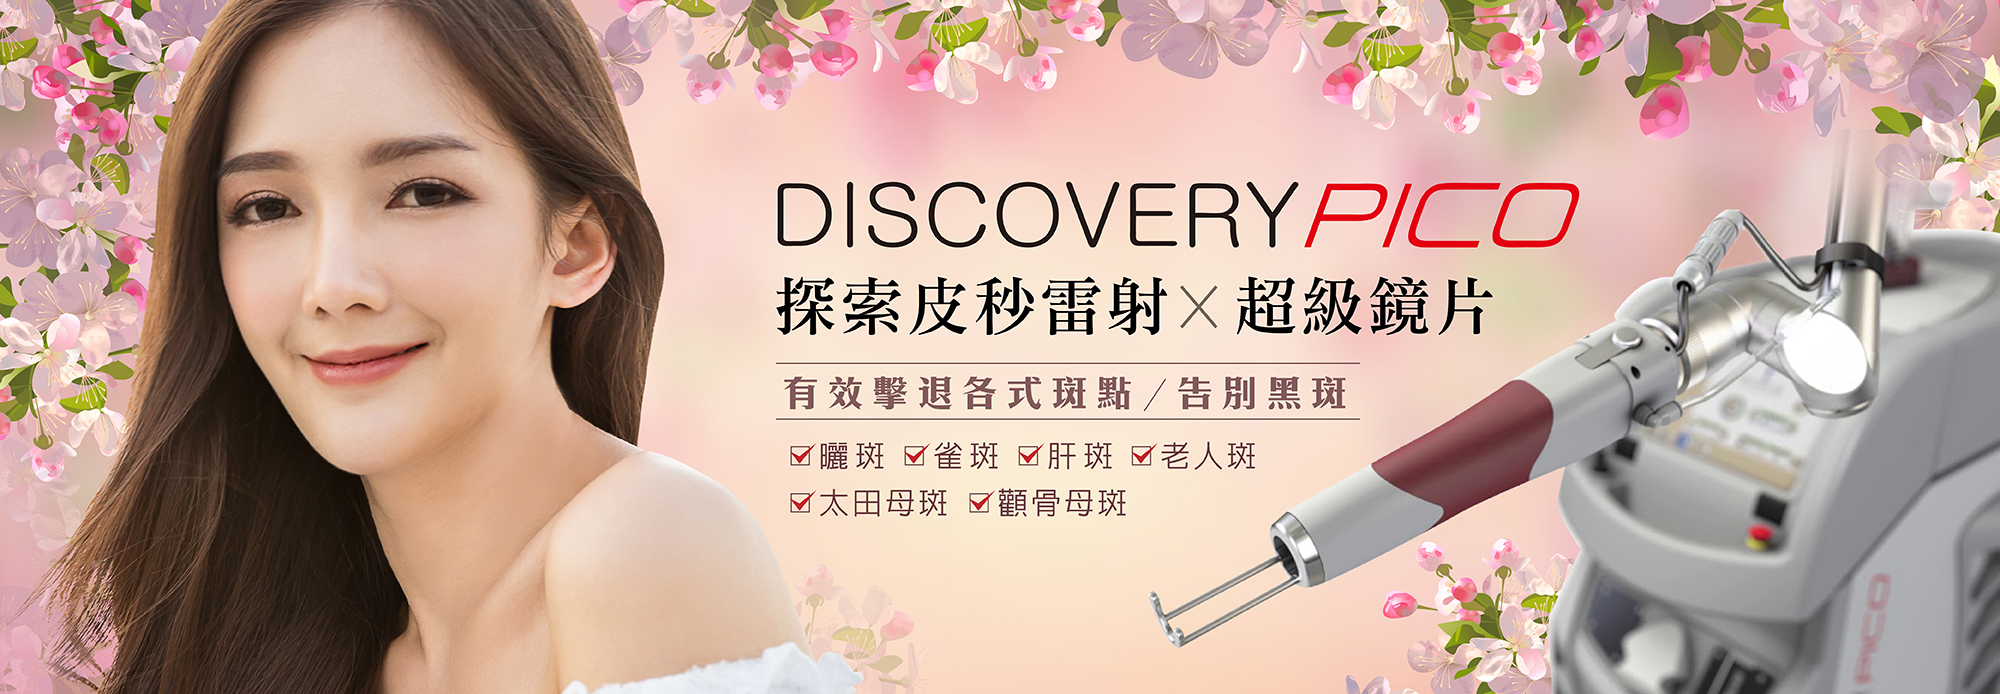 DISCOVERY PICO Plus探索皮秒